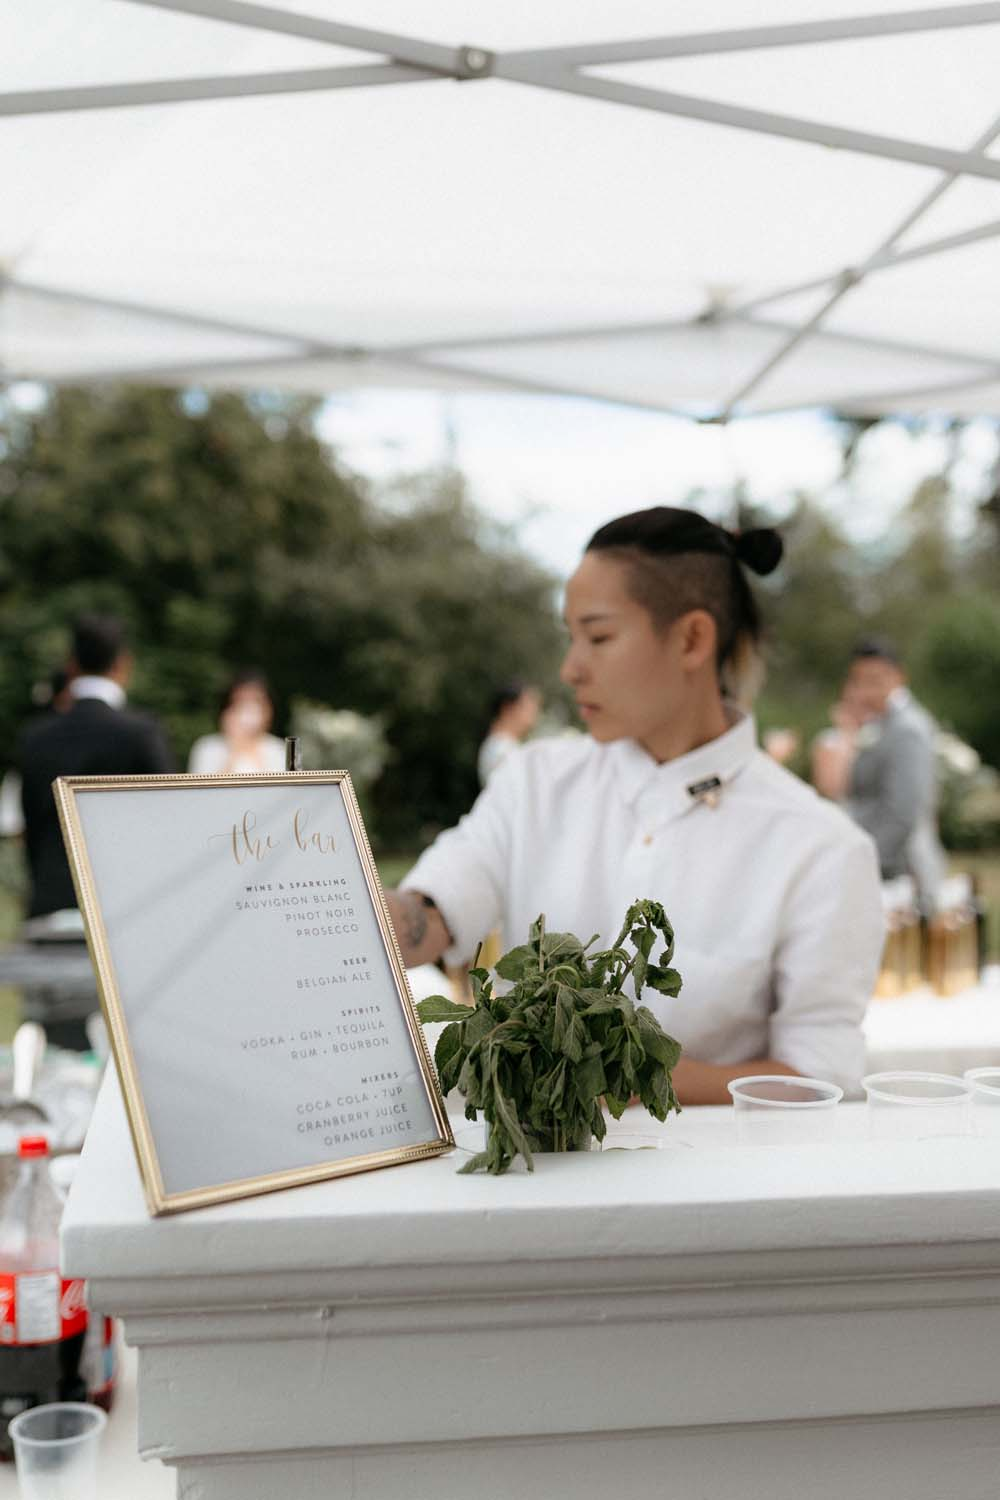 A Multicultural Wedding At The UBC Botanical Garden in Vancouver - bar menu